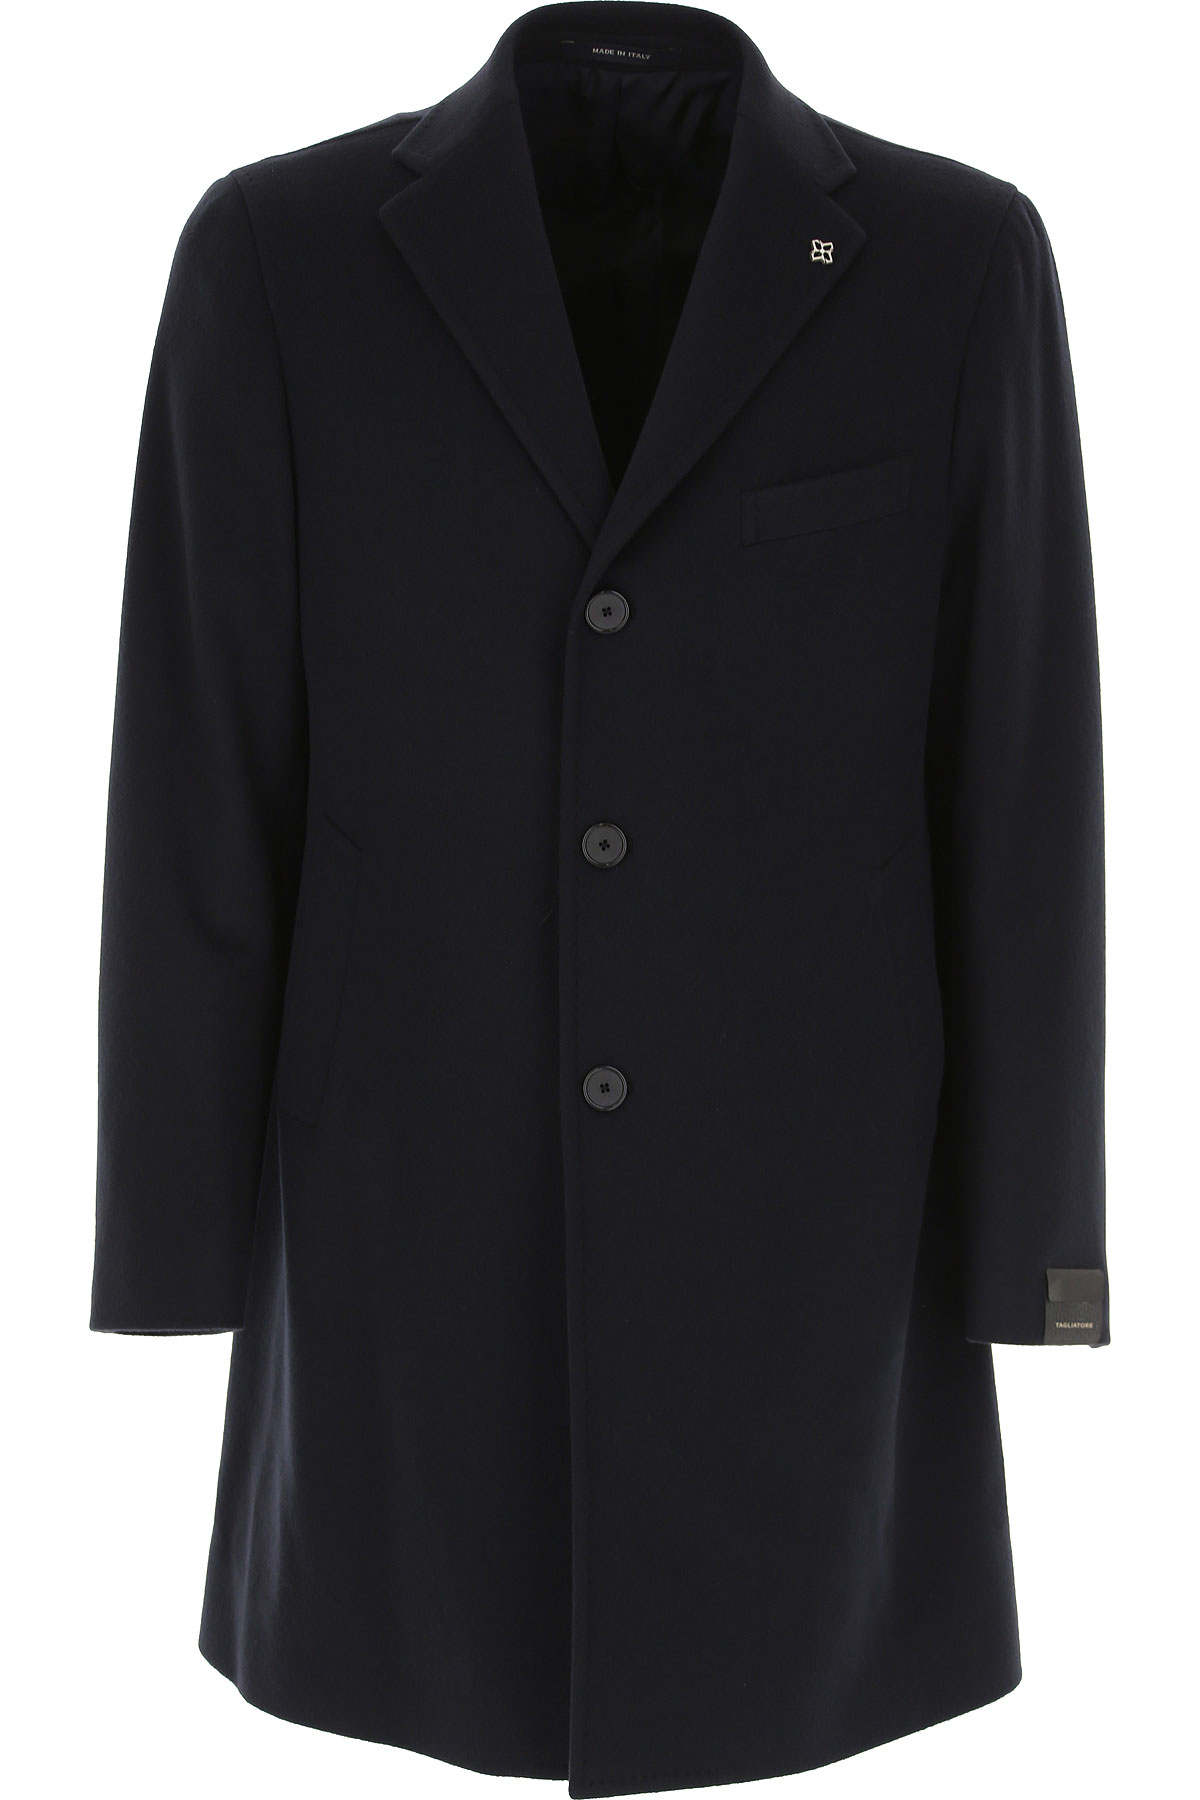 Tagliatore Men's Coat On Sale in Outlet, Navy Blue, Wool, 2019, XXL XXXL